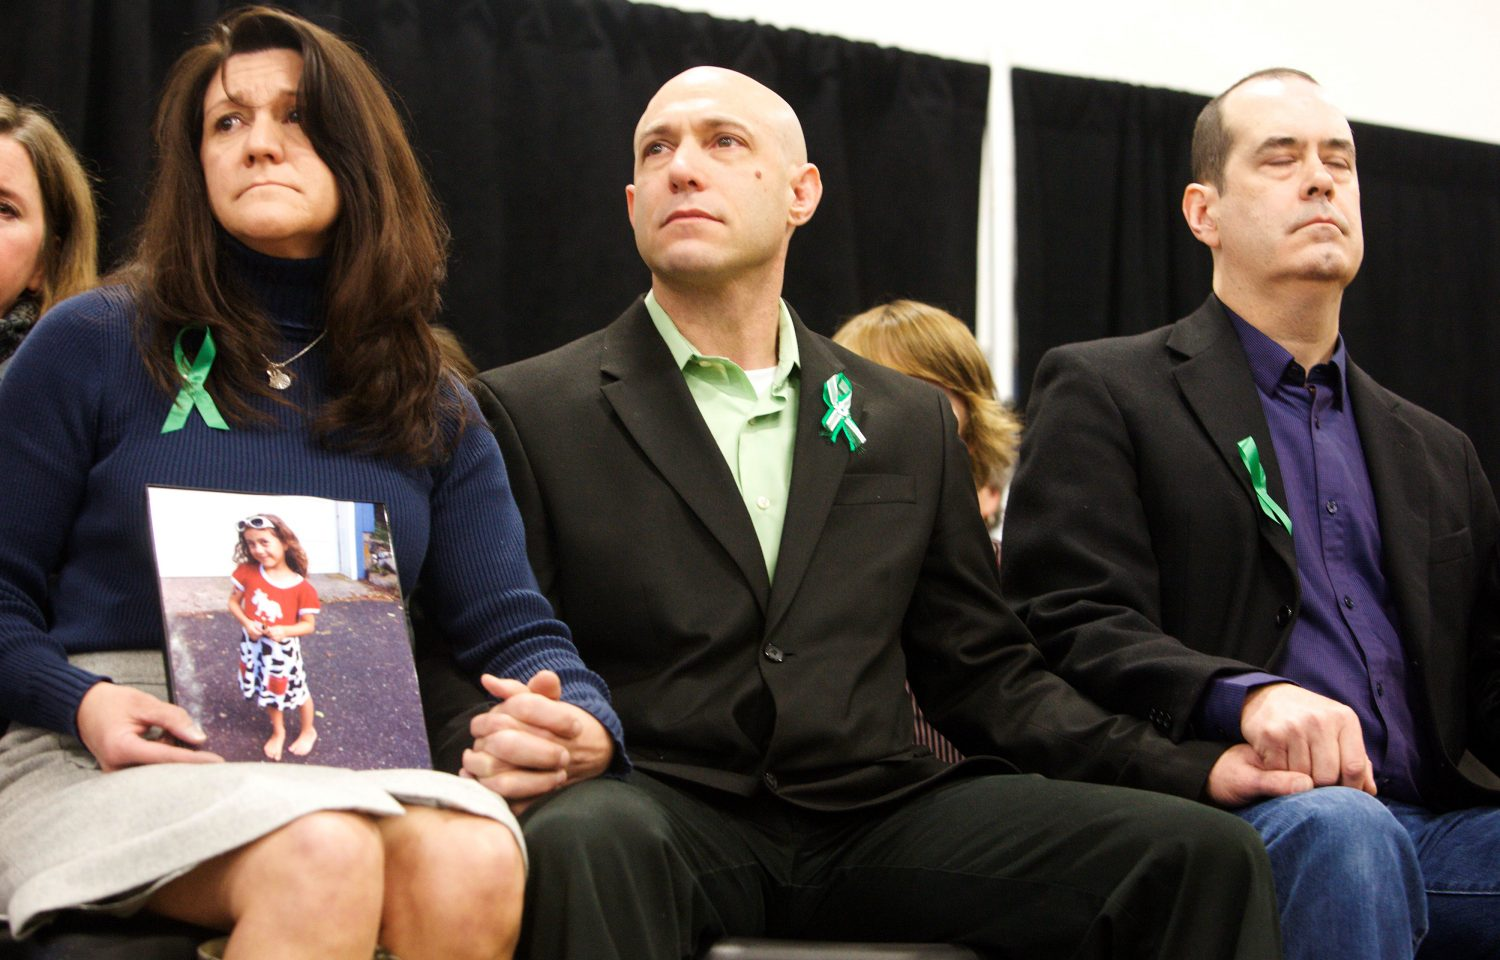 FILE PHOTO: Jennifer Hensel (L) and Jeremy Richman, the parents of Avielle Richman, 6, and David Wheeler (R), the father of Benjamin Wheeler, 6, victims of the December 14, 2012 shooting at Sandy Hook Elementary School, attend the launch of The Sandy Hook Promise, a non-profit created in response to the shooting in Newtown, Connecticut January 14, 2013. REUTERS/Michelle McLoughlin/File Photo